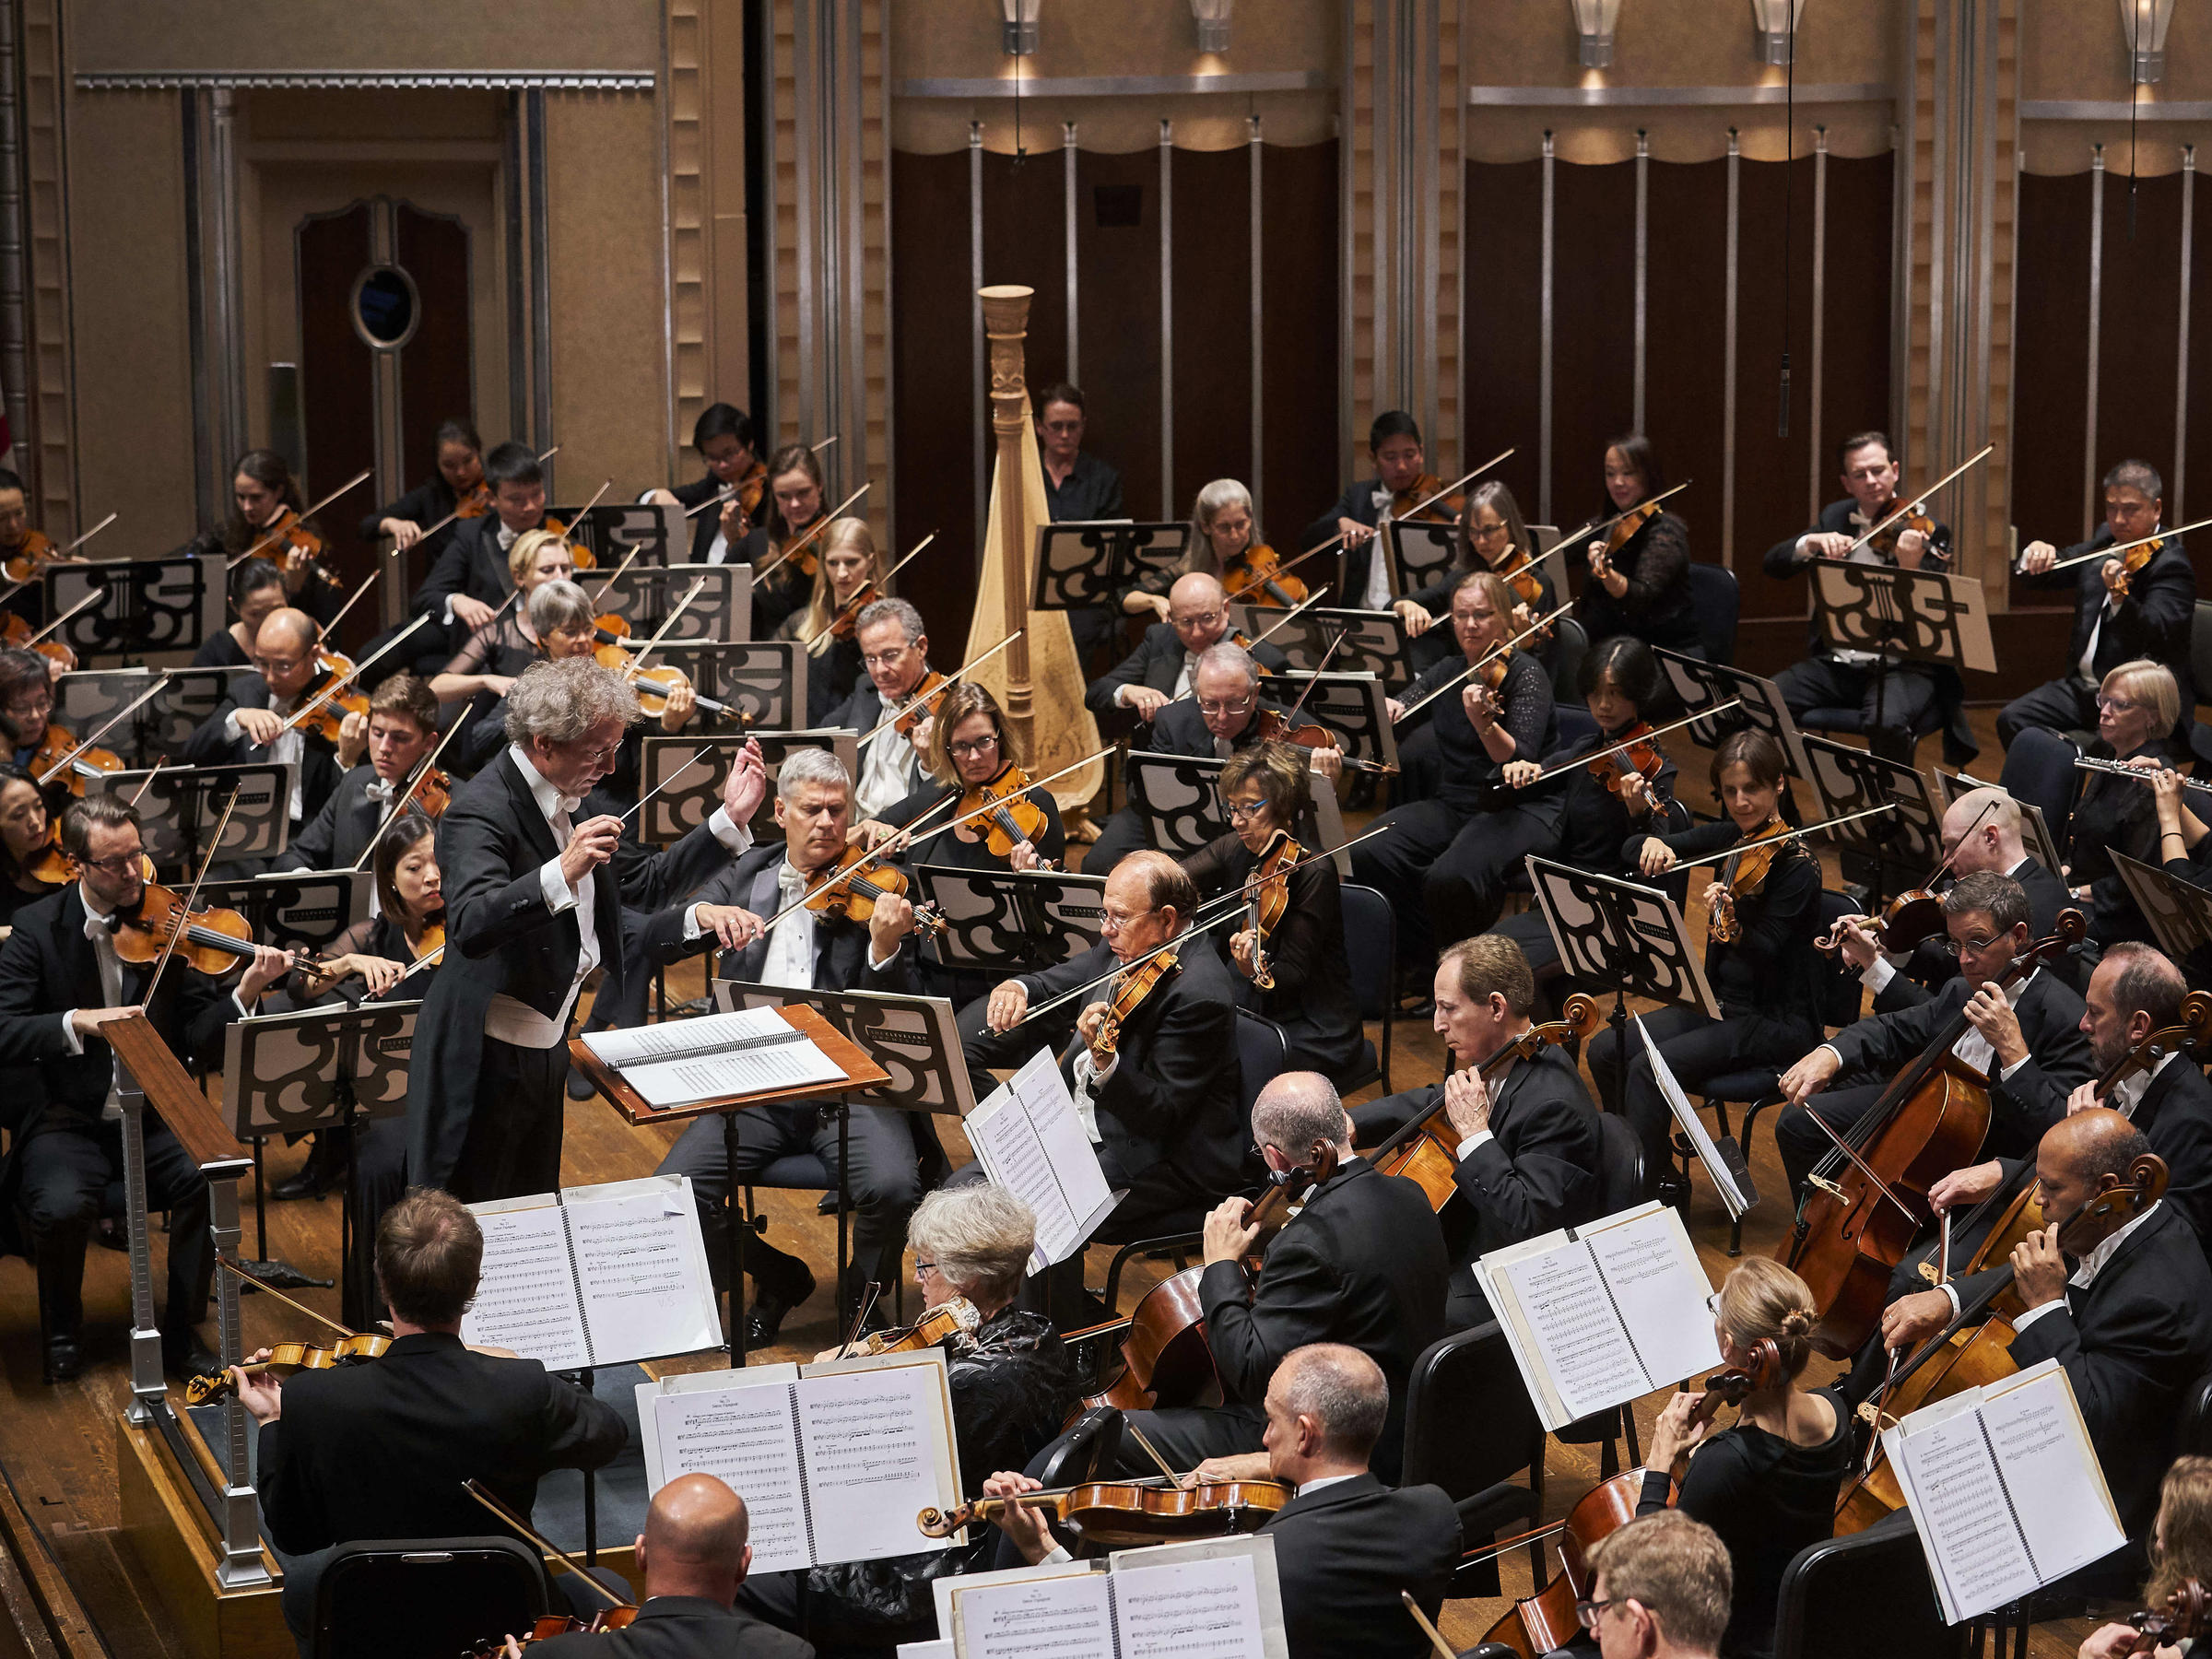 cleveland orchestra at 100: the heartland band with the world class